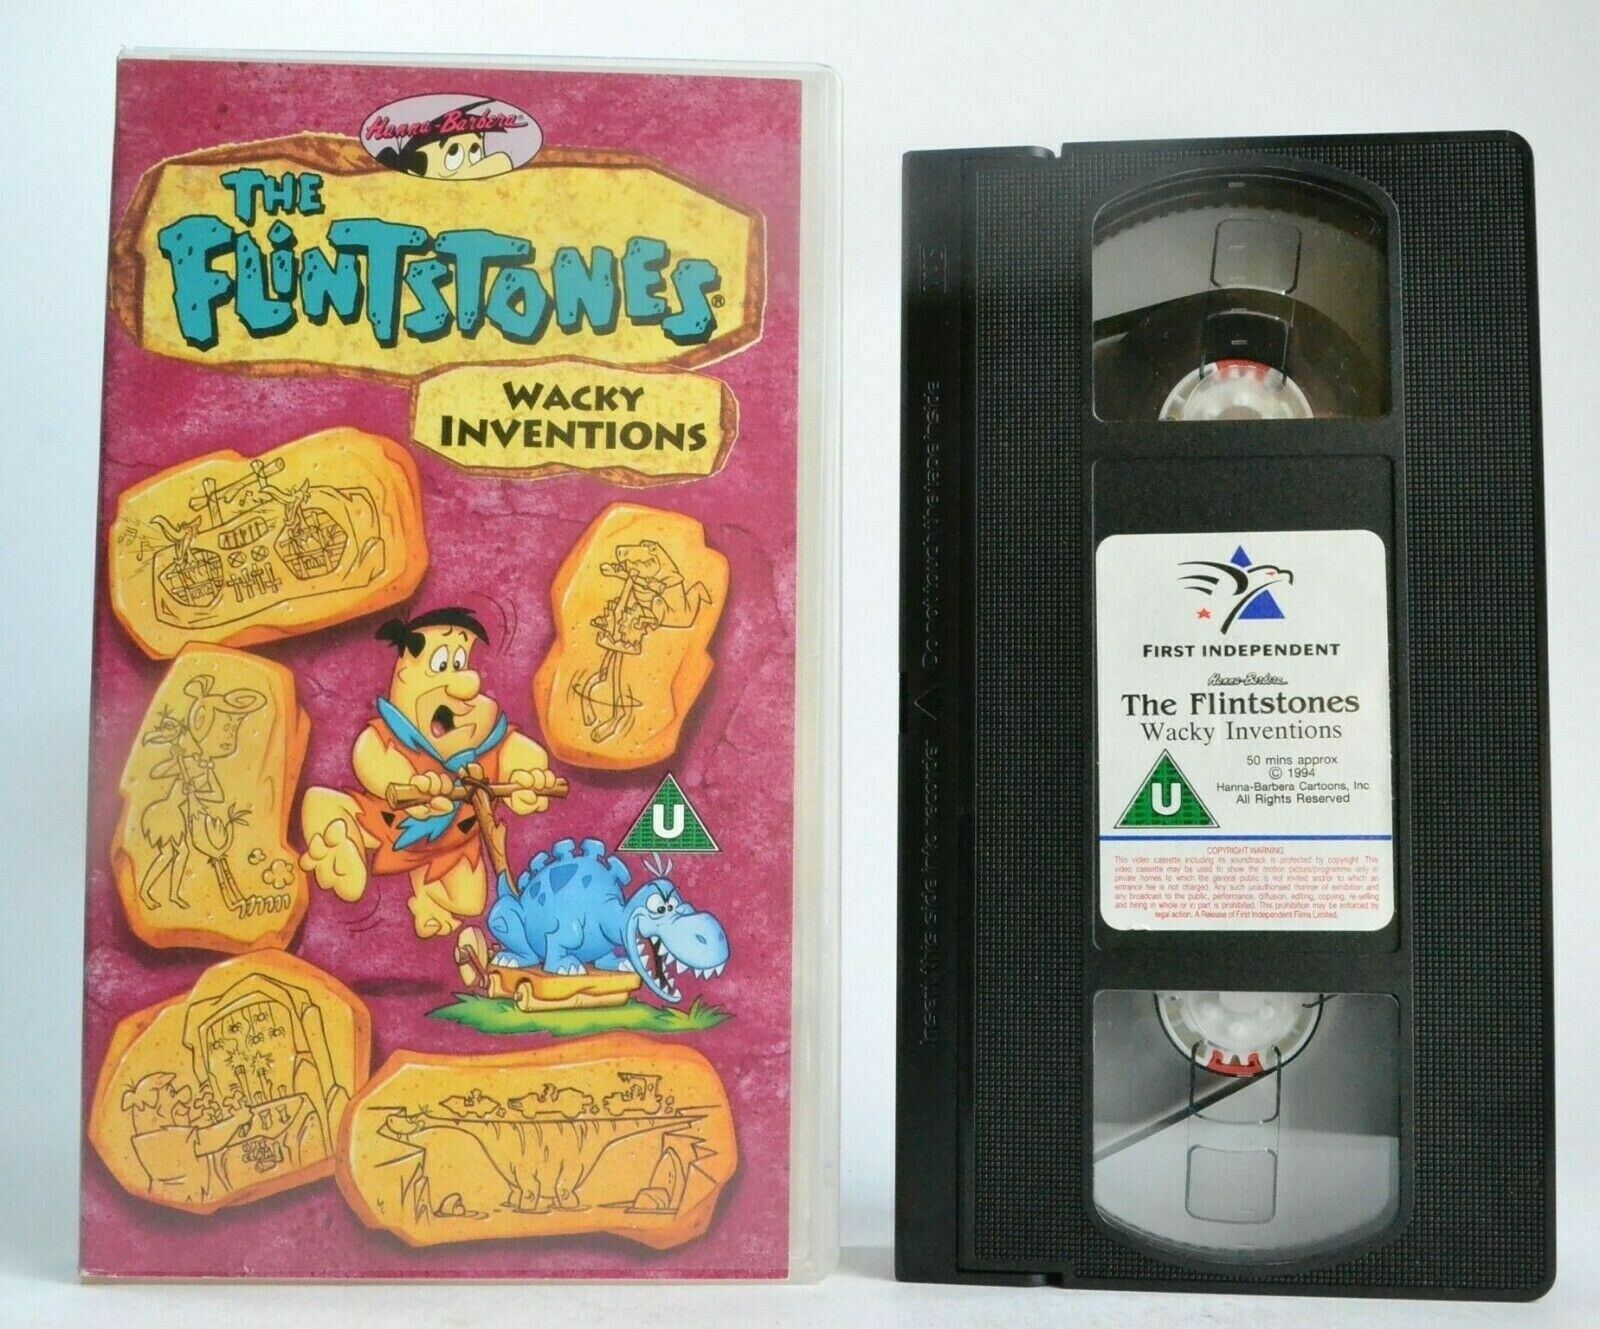 The Flintstones: Wacky Inventions (1994) - Animated Series - Children's - VHS